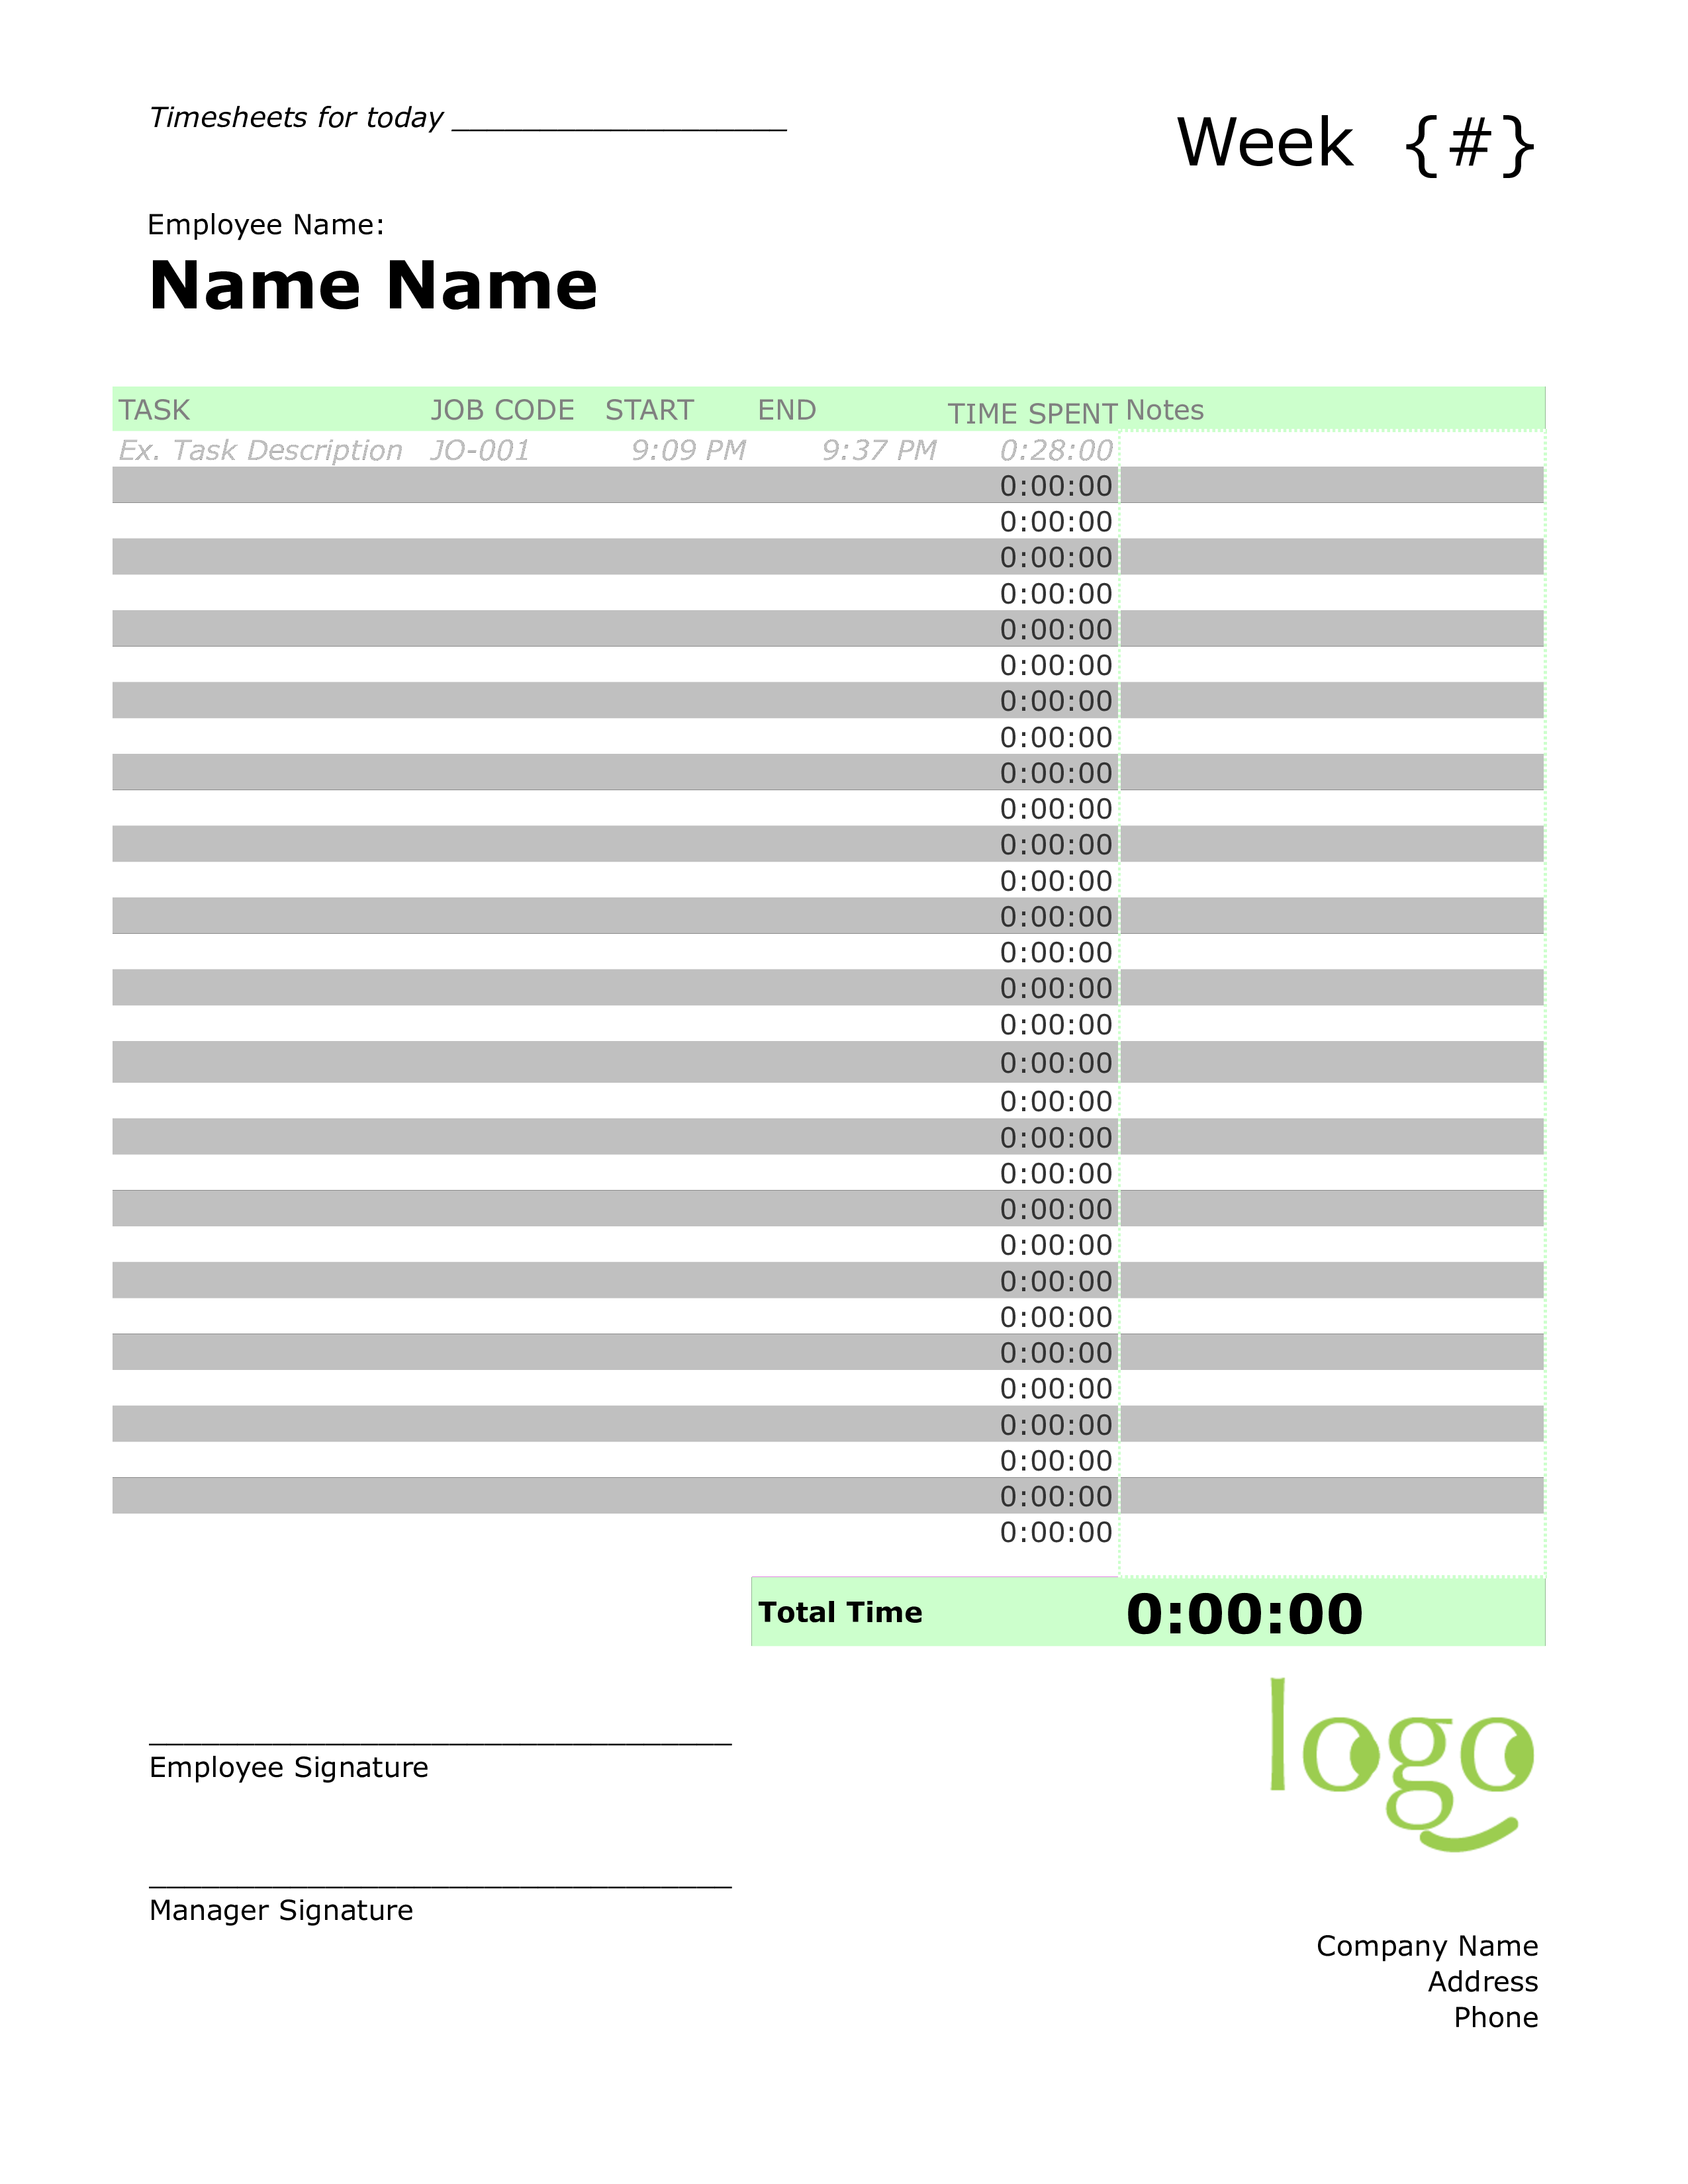 Daily Timesheet How To Set Up A Daily Timesheet Download This Example Daily Timesheet Template Now In Order To Keep Track Timesheet Template Templates Task